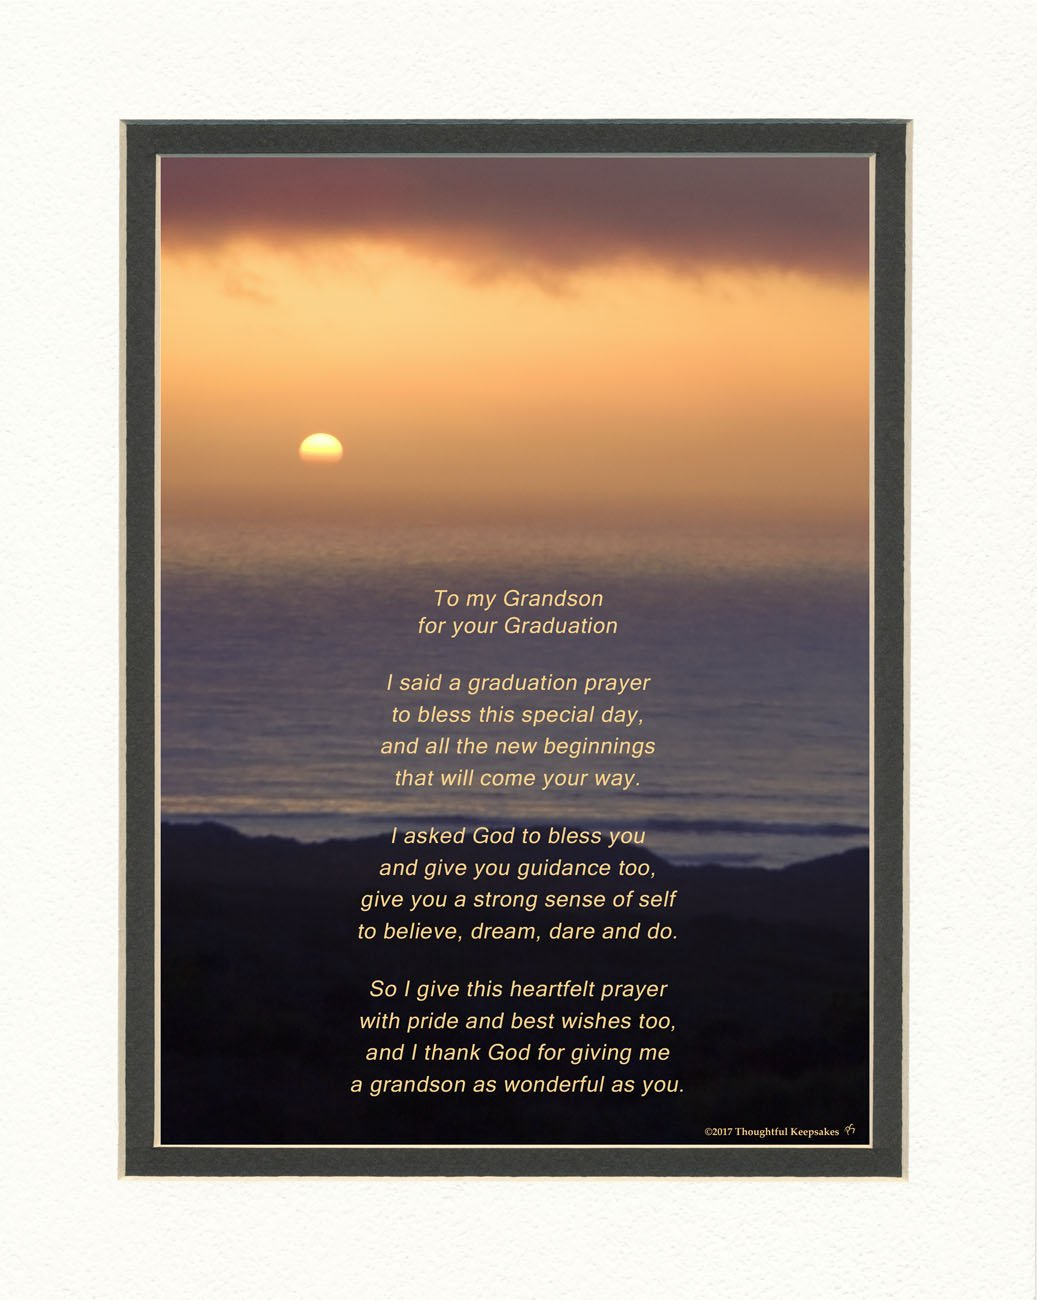 Graduation Gifts Grandson with Grandson Graduation Prayer Poem Ocean Sunset Photo, 8x10 Double Matted. Special Keepsake for Grandson. Unique College and High School Grad Gifts.